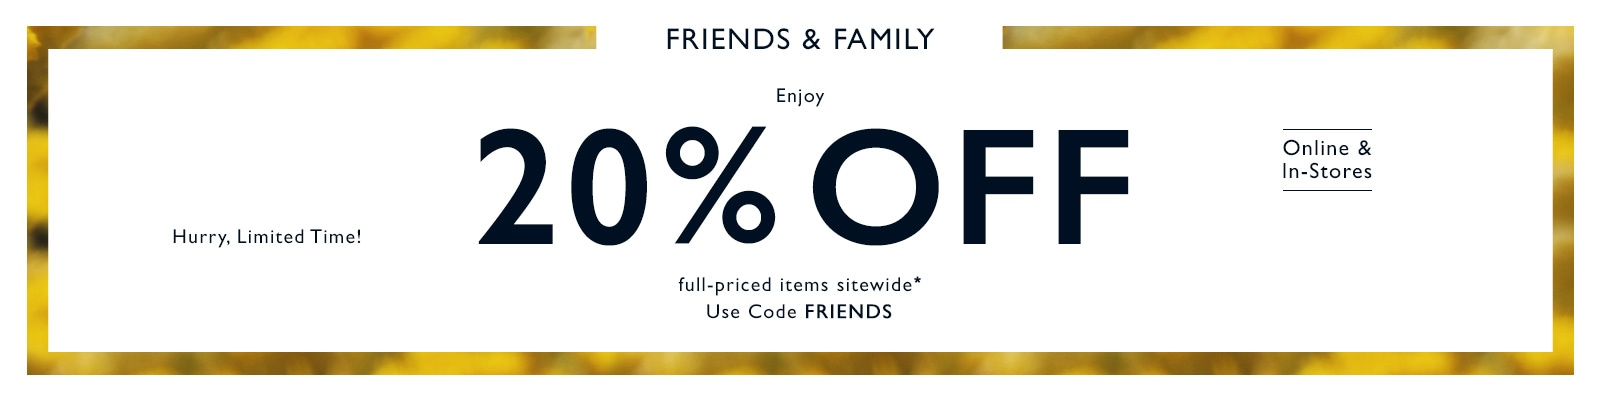 Use code FRIENDS